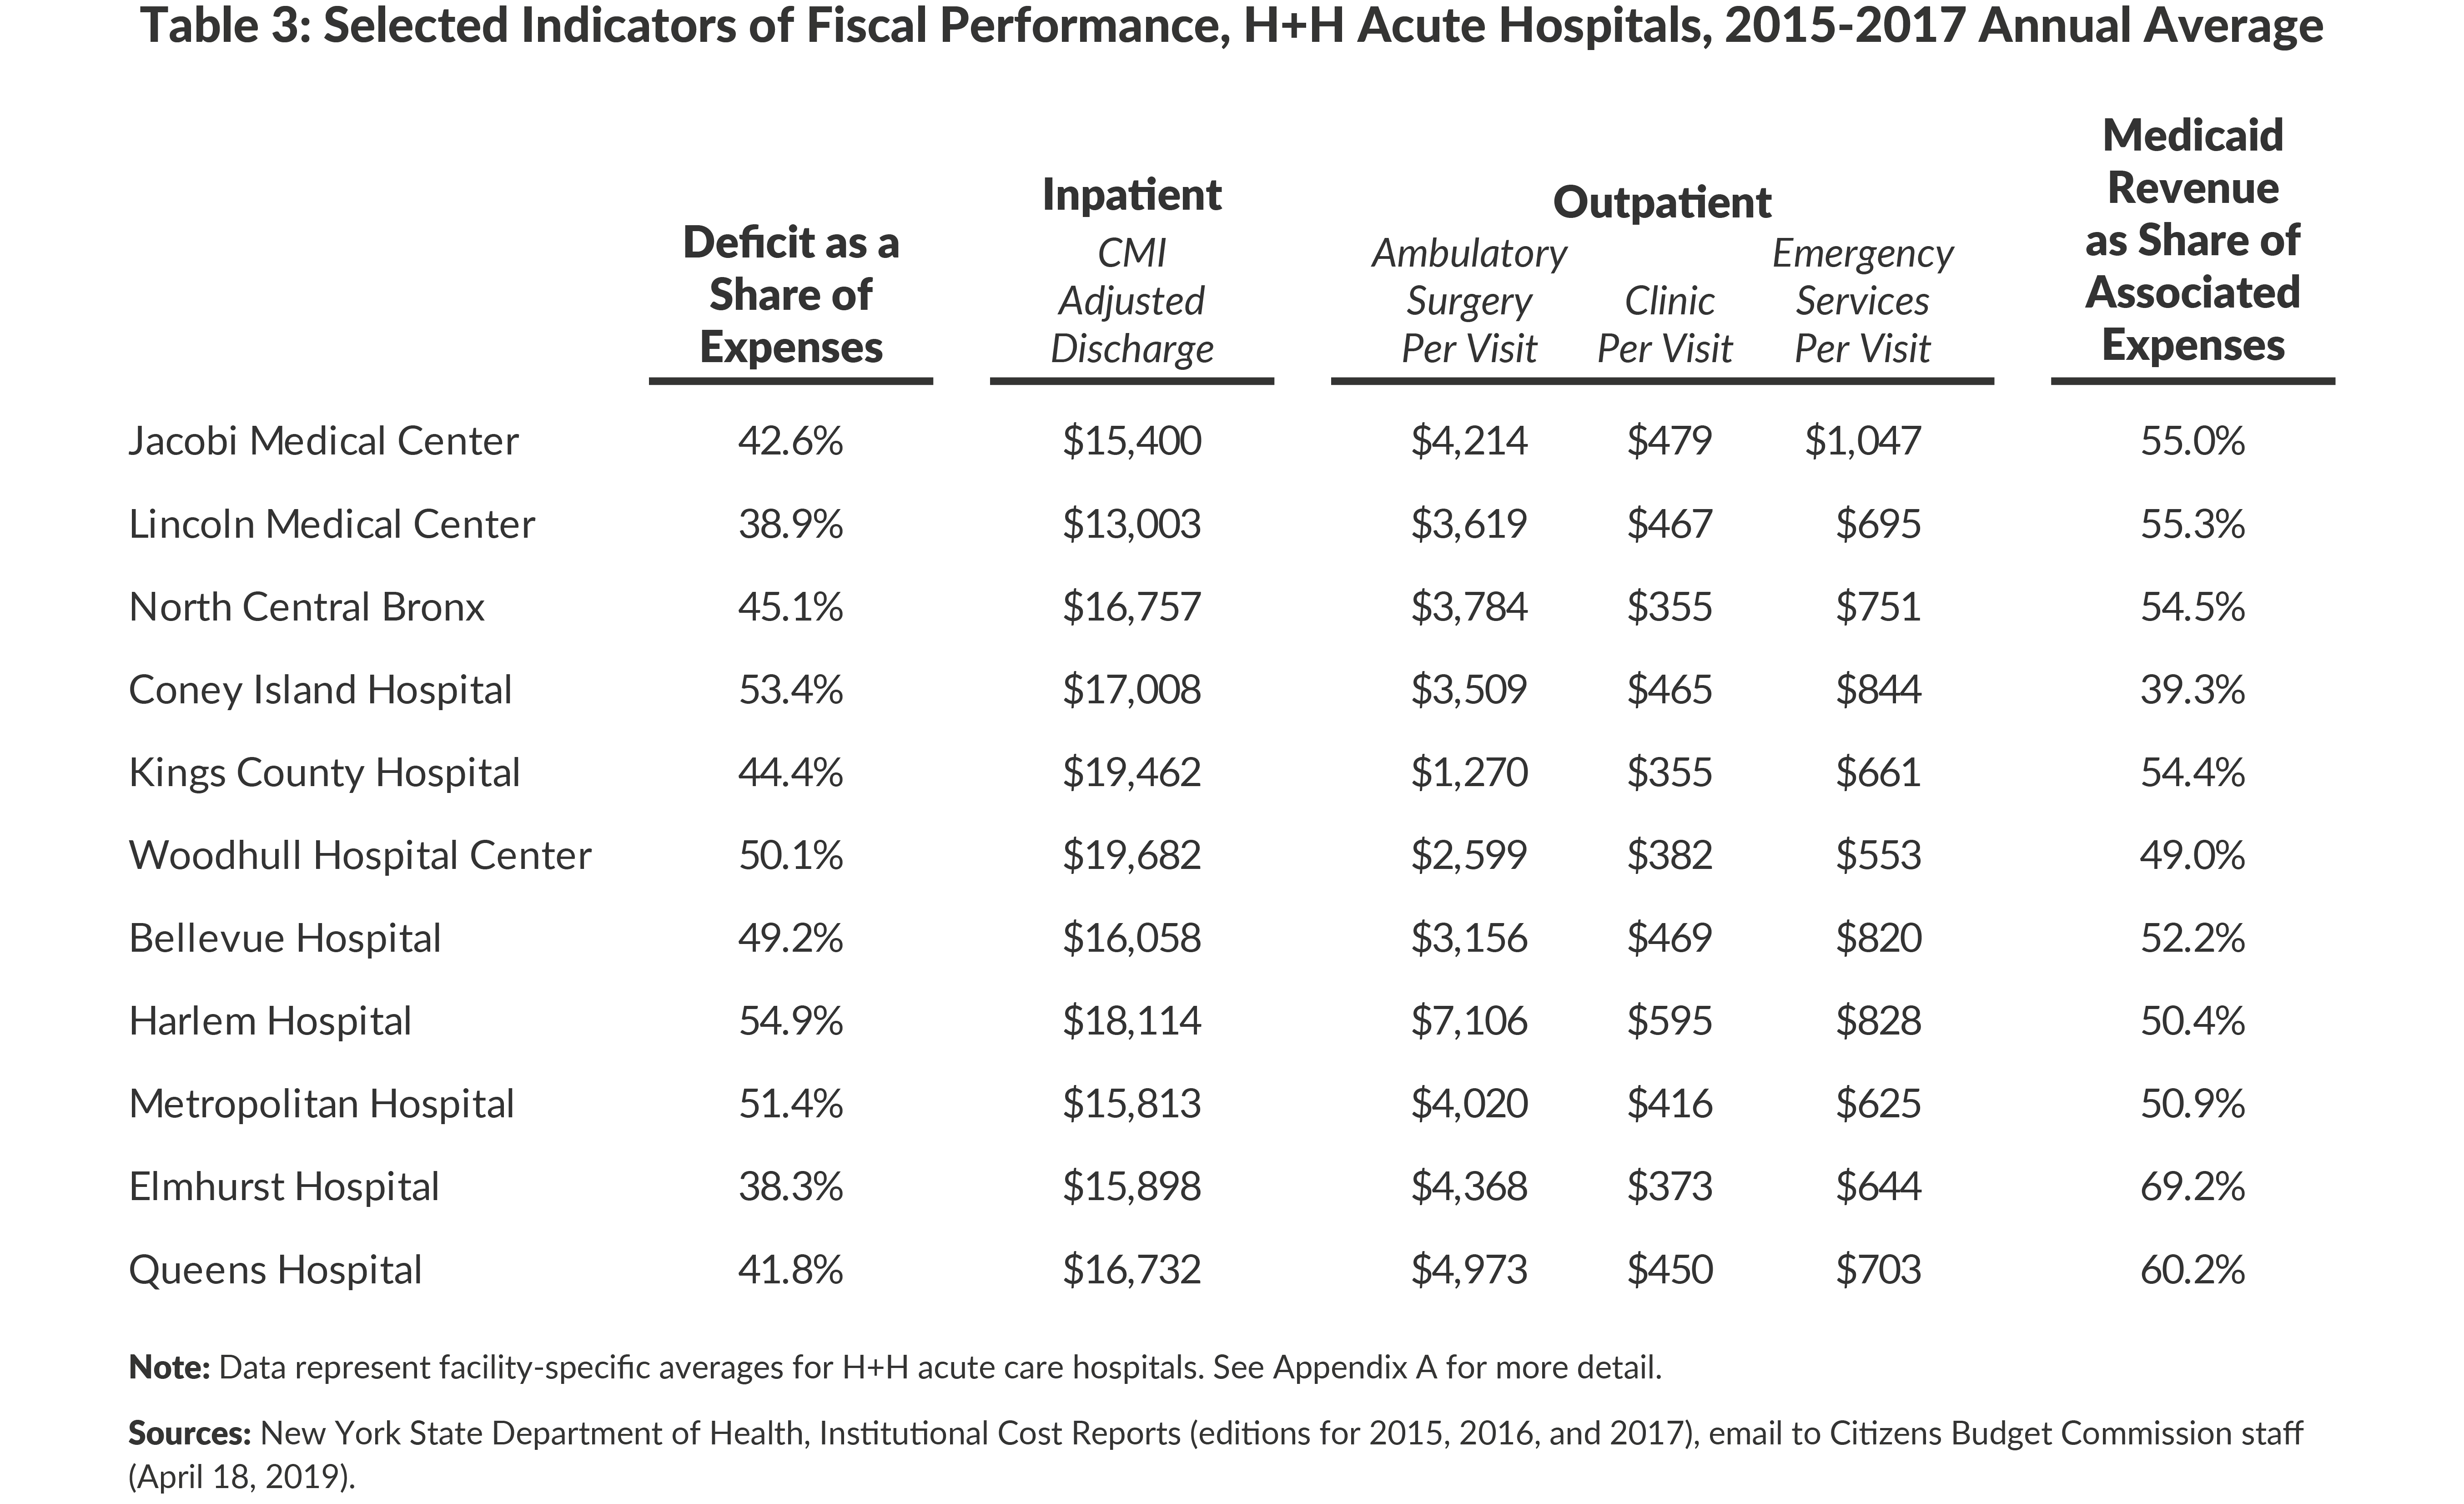 Table 3: Selected Indicators of Fiscal Performance, H+H Acute Hospitals, 2015-2017 Annual Average